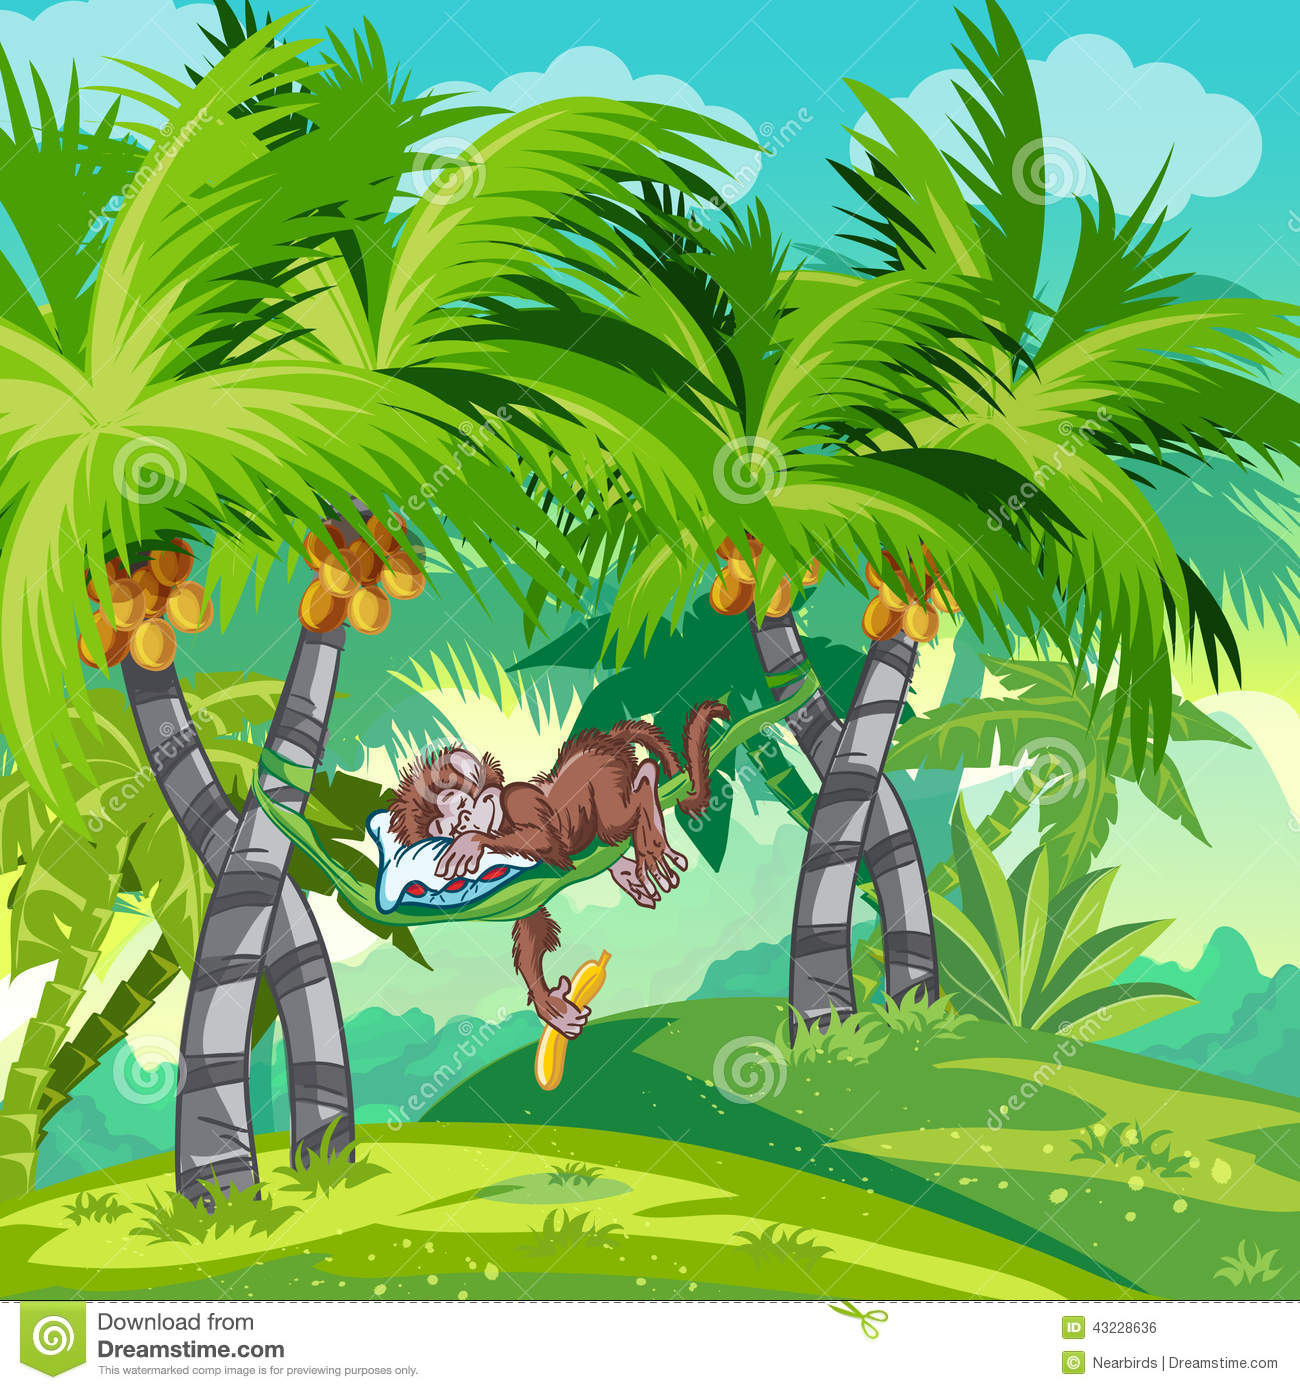 Children S Illustration Of The Jungle With A Sleeping